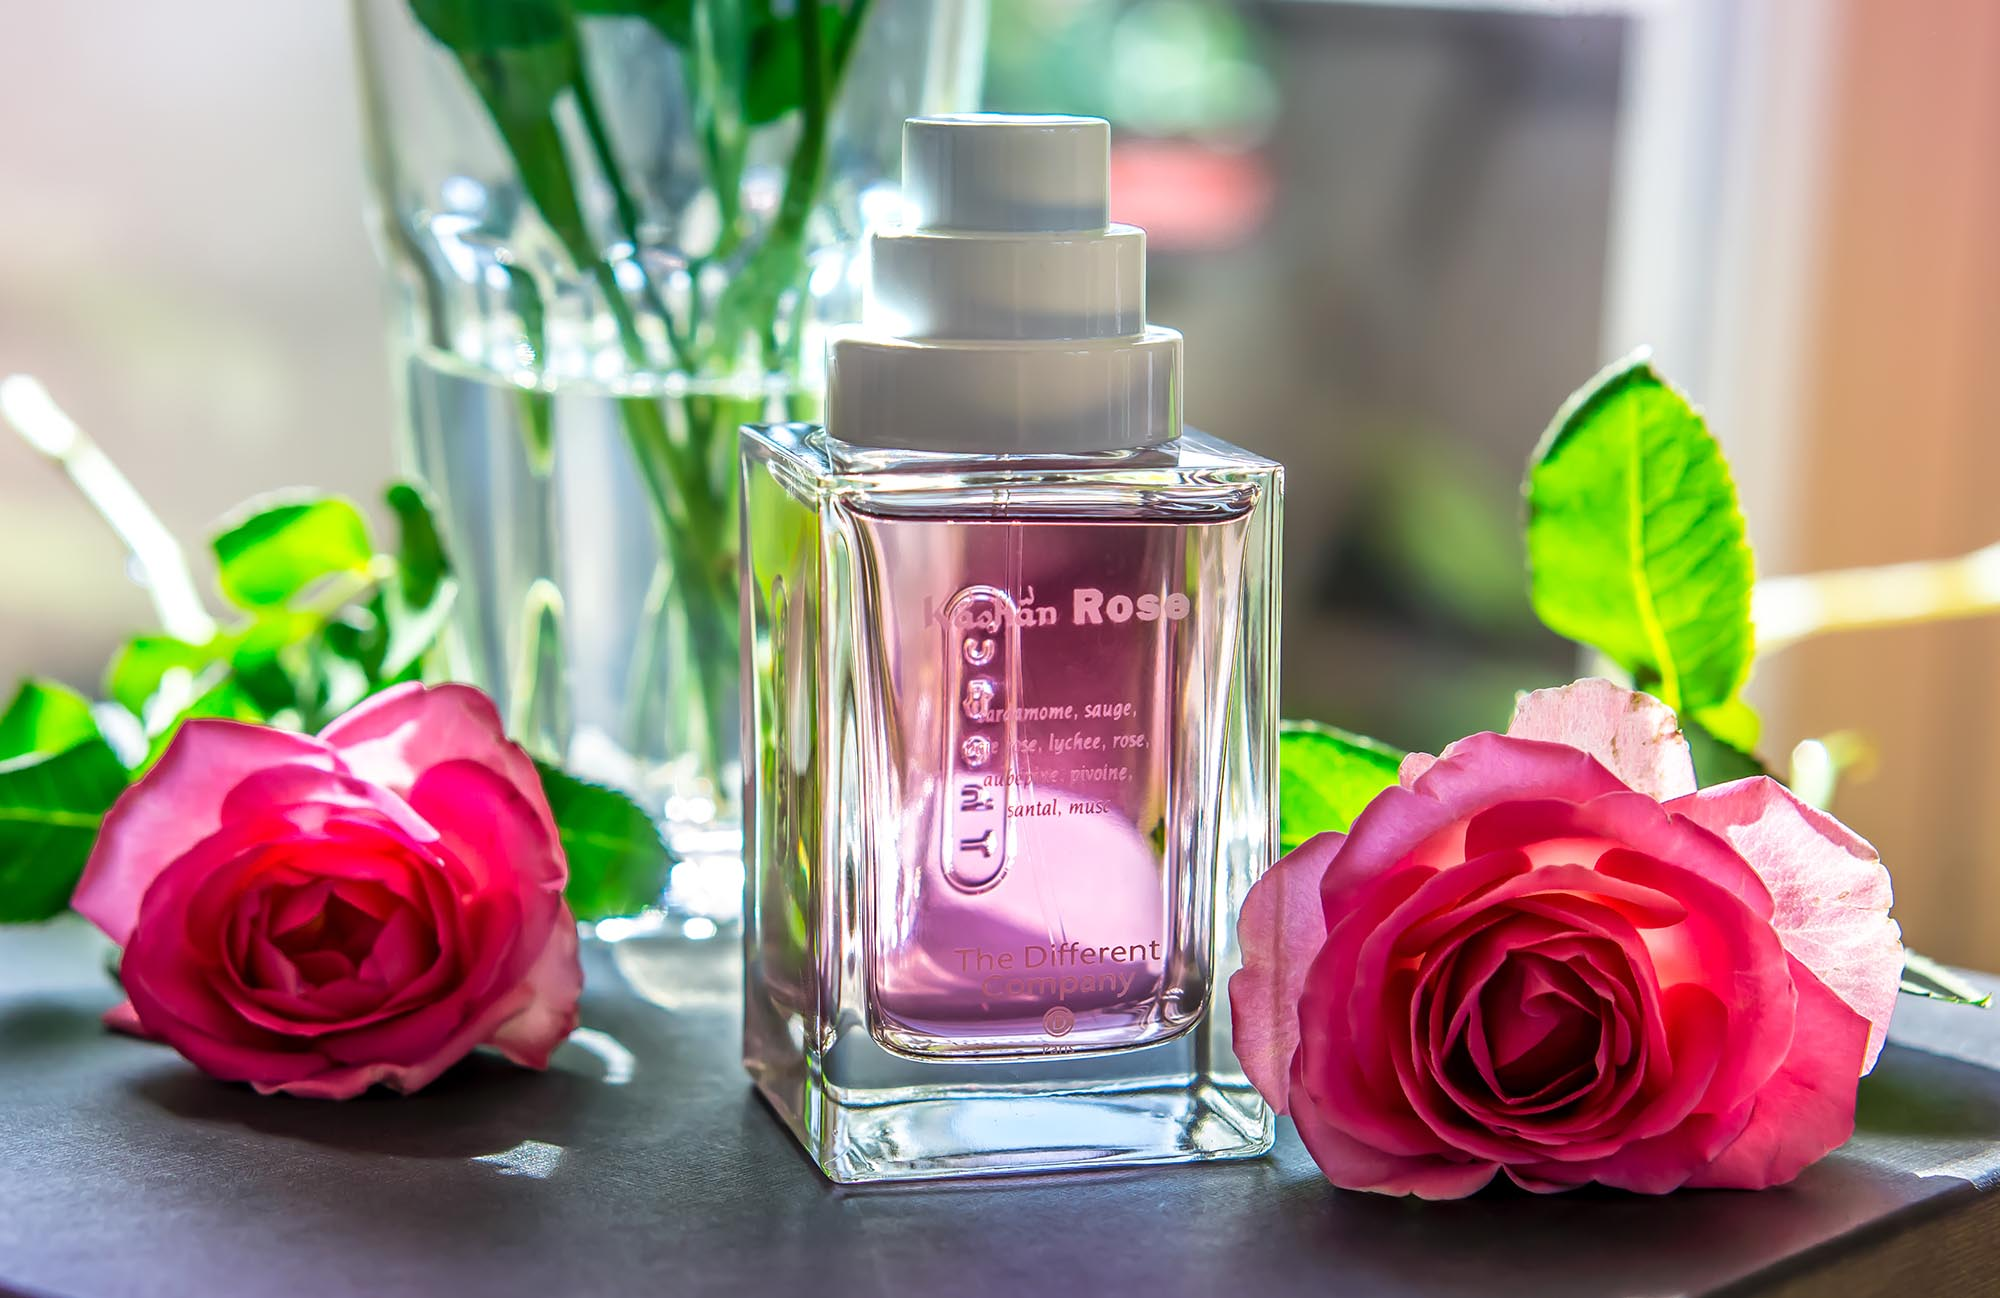 Kashan Rose The Different Company perfume niche fragrance Parfüm парфюм